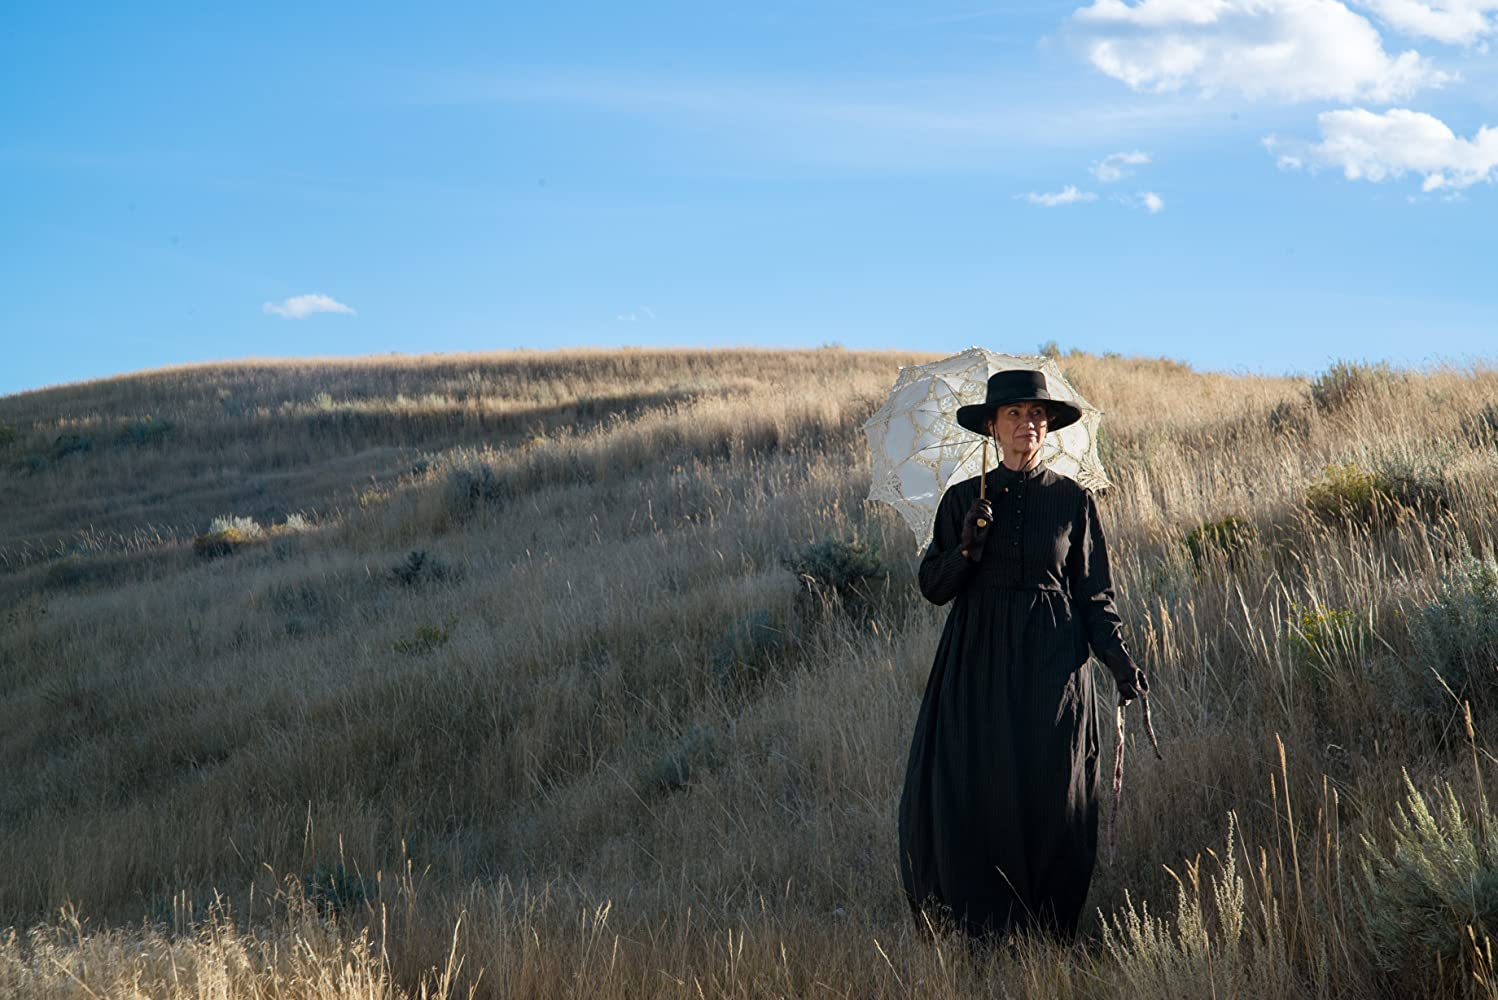 Kathy Baker in The Ballad of Lefty Brown (2017)